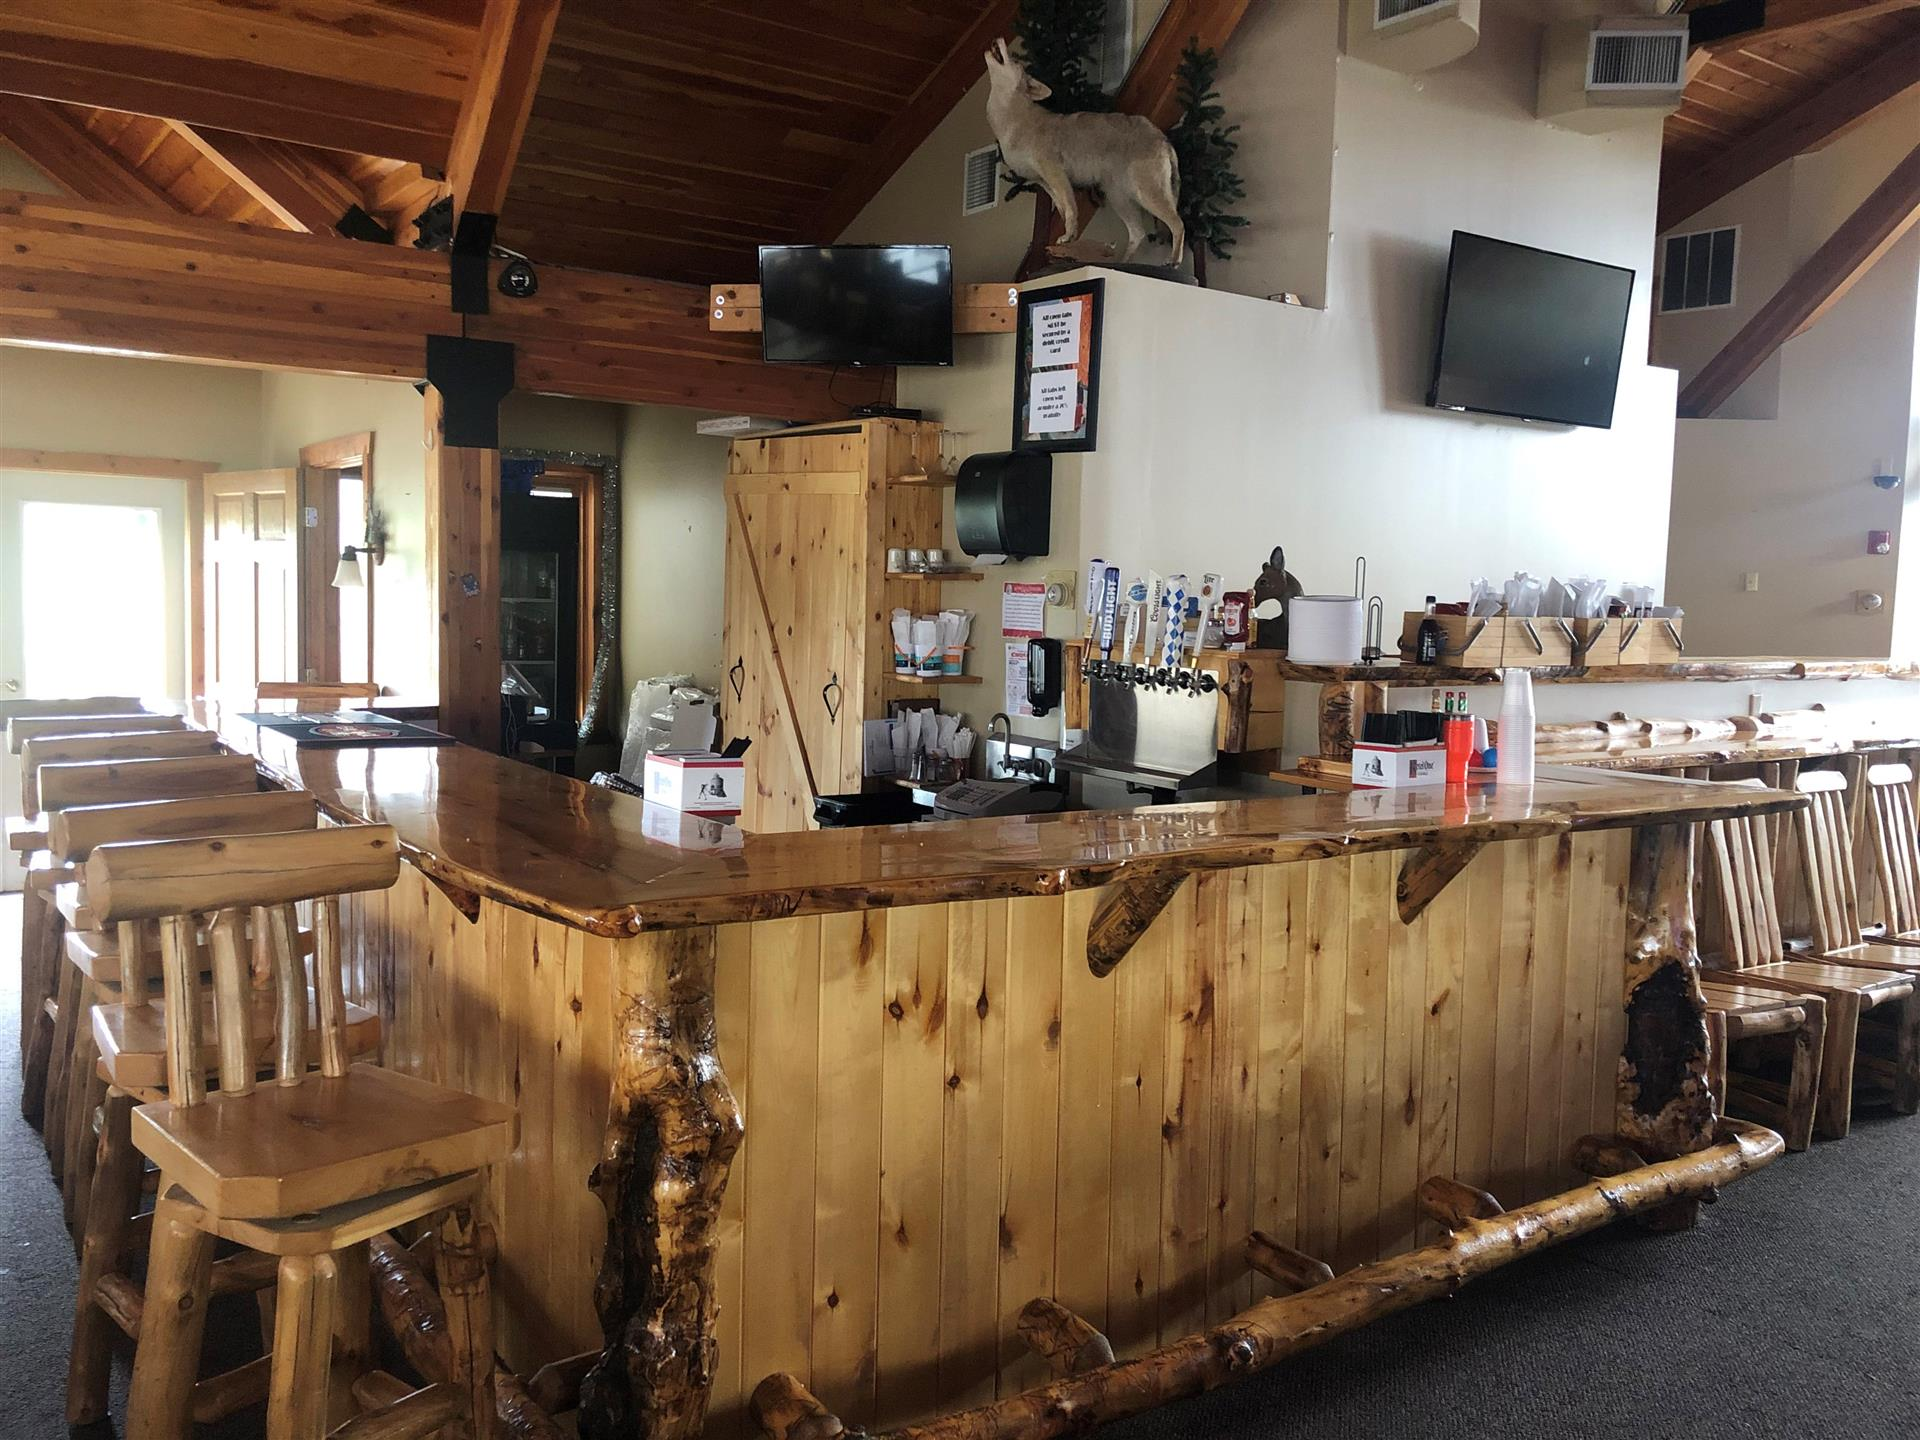 a wooden bar with wooden stools